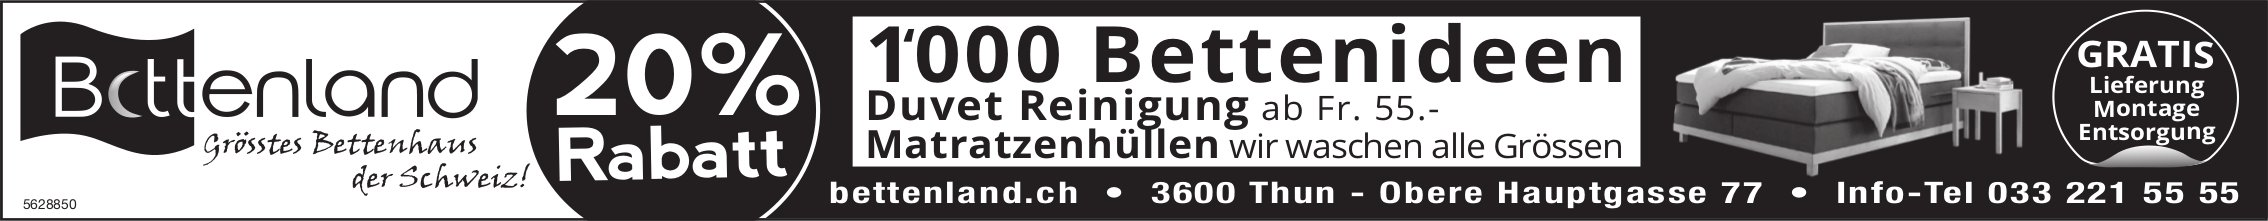 Bettenland, Thun - 20% Rabatt, 1'000 Bettenideen